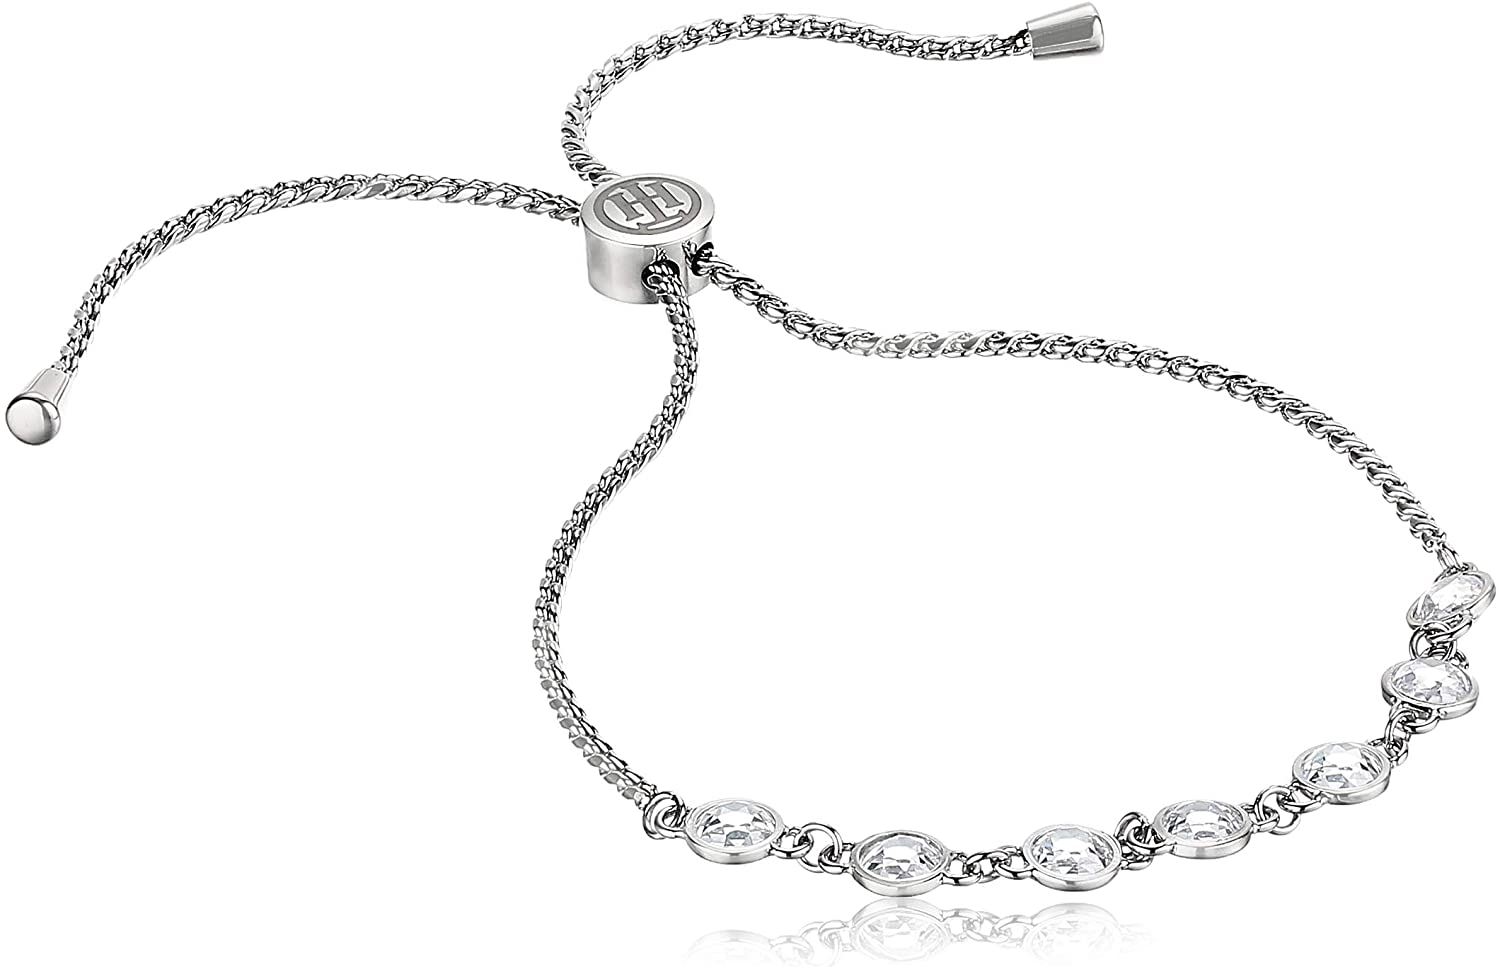 Tommy Hilfiger Women's Jewelry Stainless Steel Bracelet Embellished with Stones, Color: Silver (Model: 2780225)